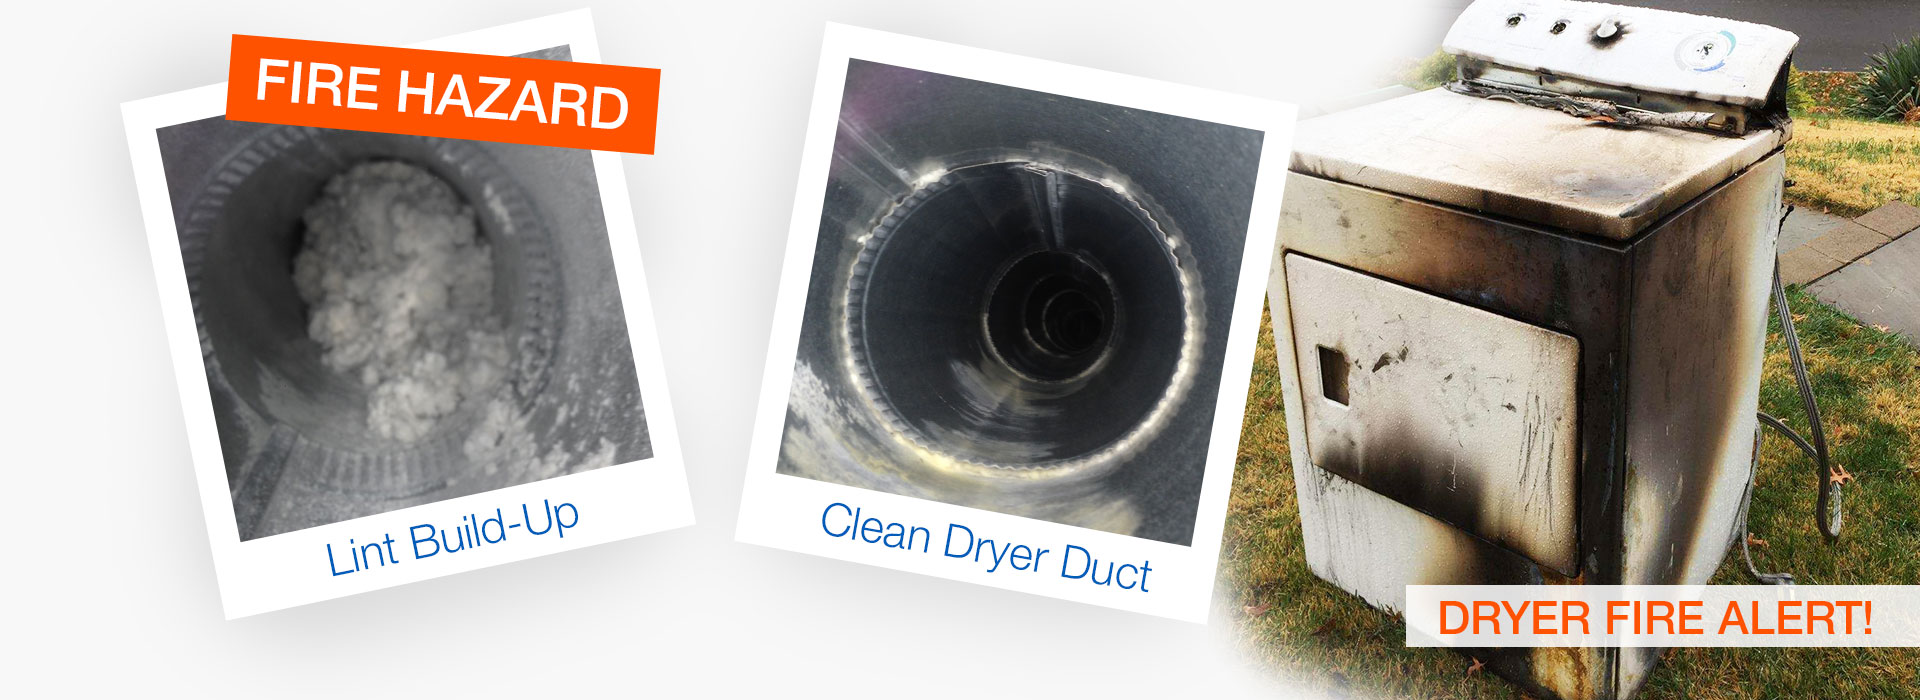 Smothery Better Air Dryer Vent Cleaning Services Dryer Vent Cleaning Ct Connecticut Dryer Vent Cleaners Better Air Dryer Vent Booster Fan Grainger Fantech Dryer Vent Booster Fan houzz 01 Dryer Vent Booster Fan